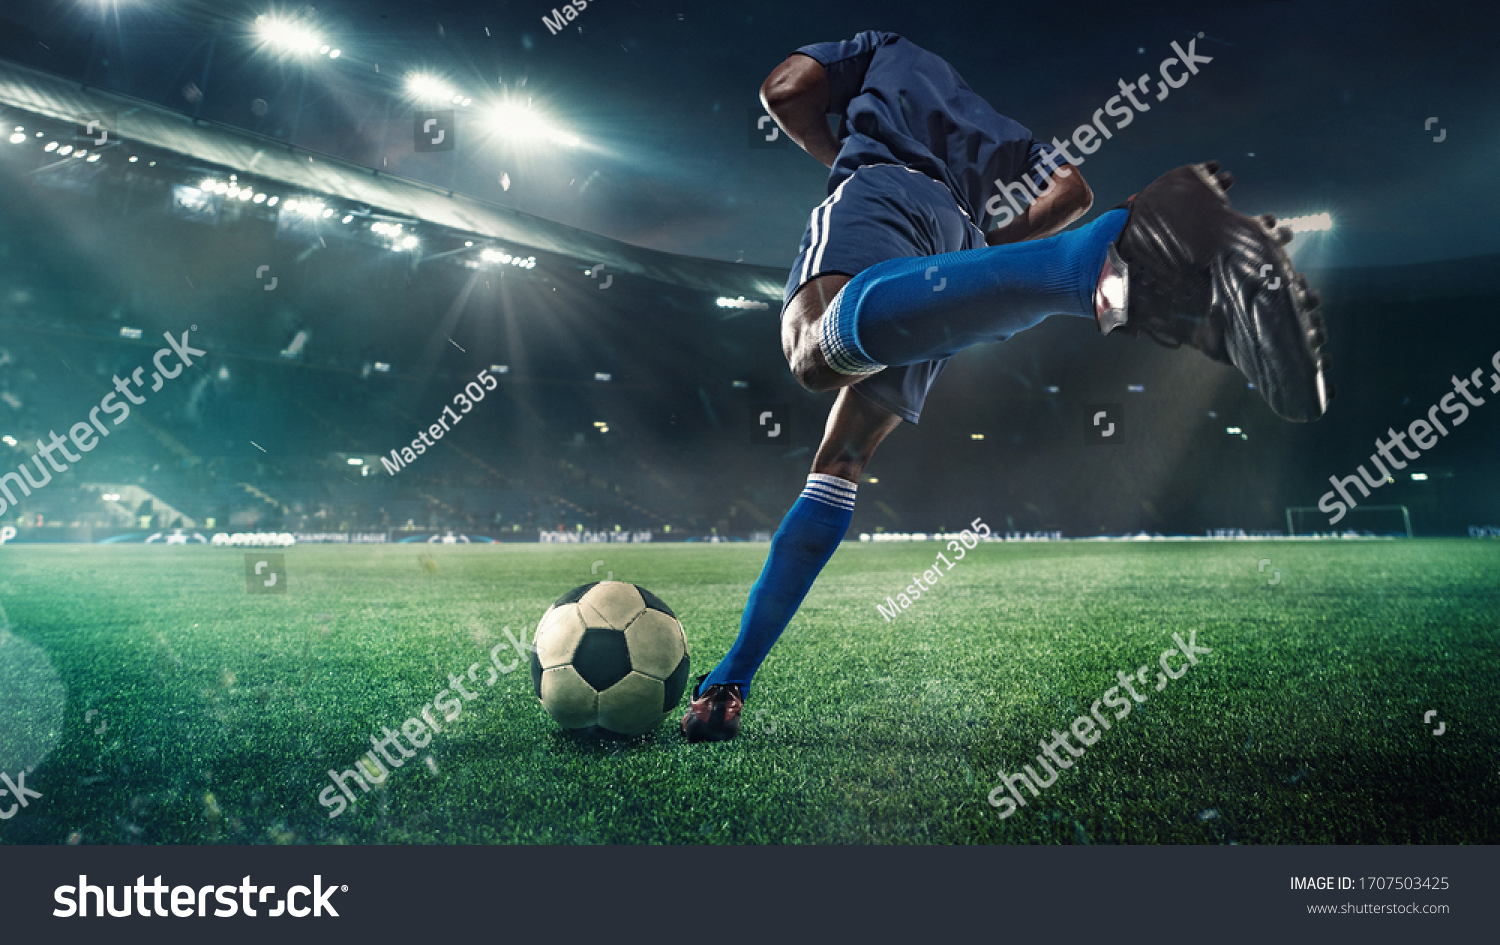 Professional football or soccer player in action on stadium with flashlights, kicking ball for winning goal, wide angle. Concept of sport, competition, motion, overcoming. Field presence effect. #1707503425